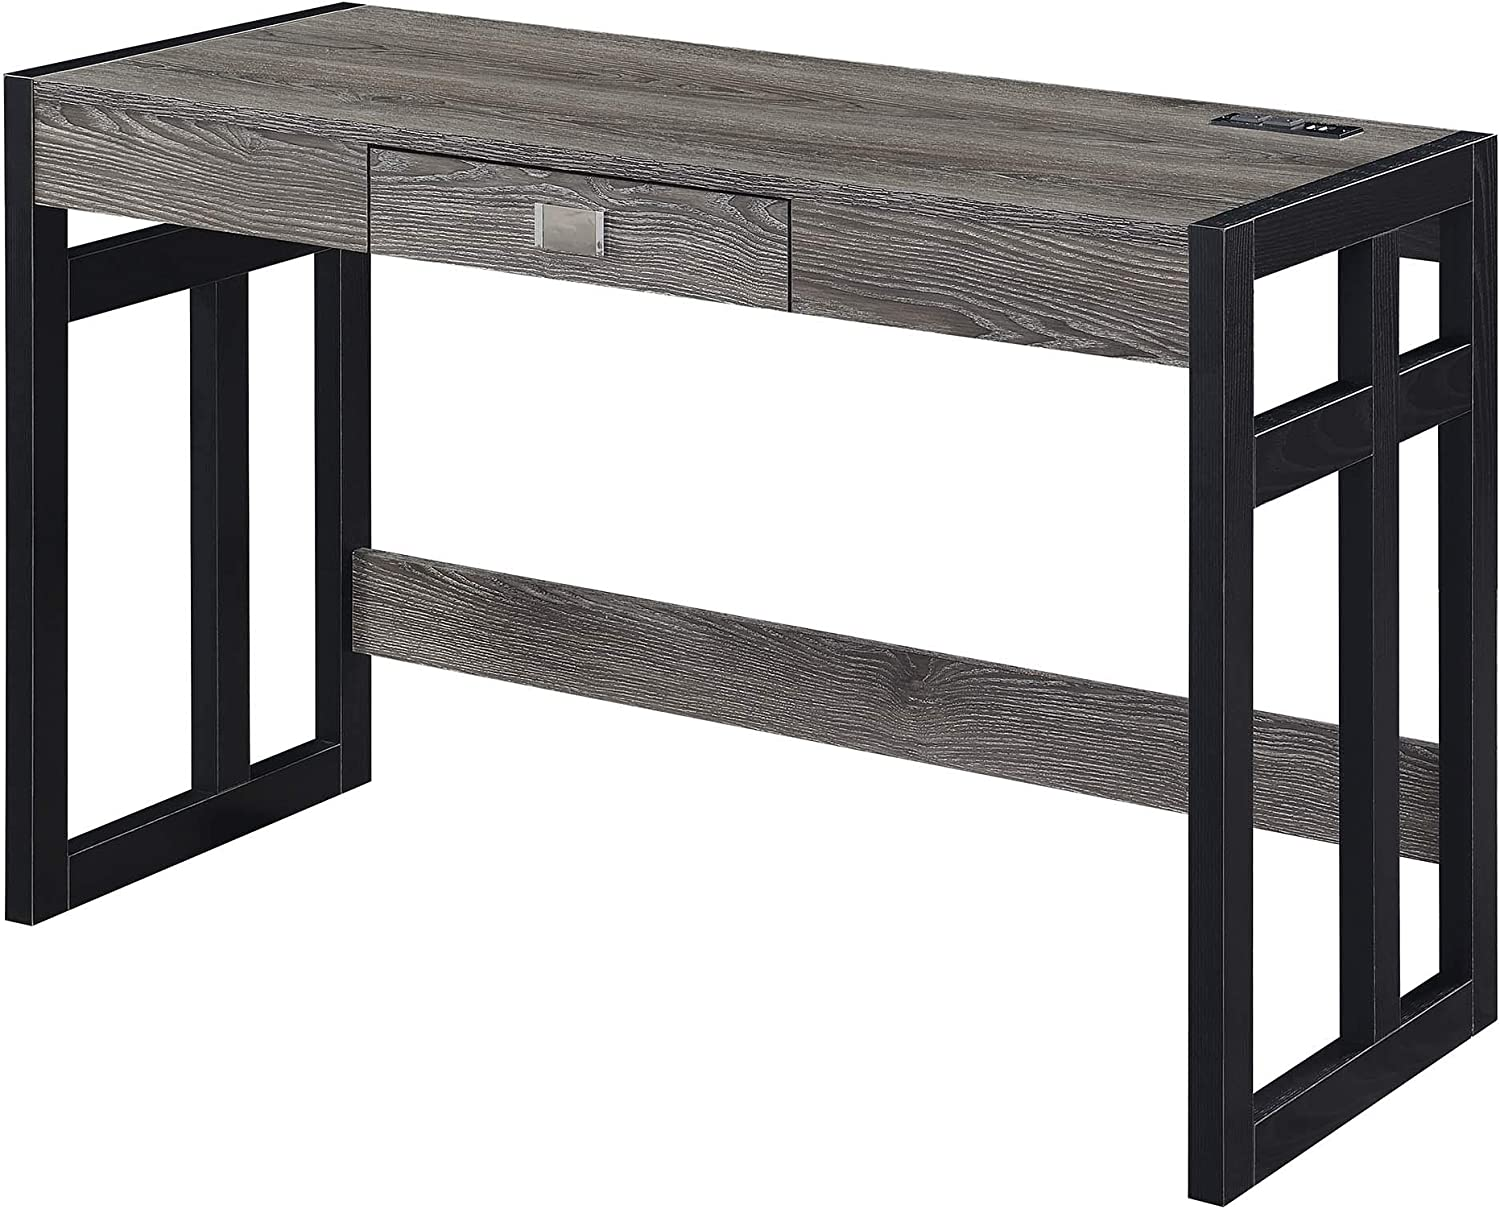 Convenience Concepts Monterey Desk with Charging Station, 47-inch, Weathered Gray/Black